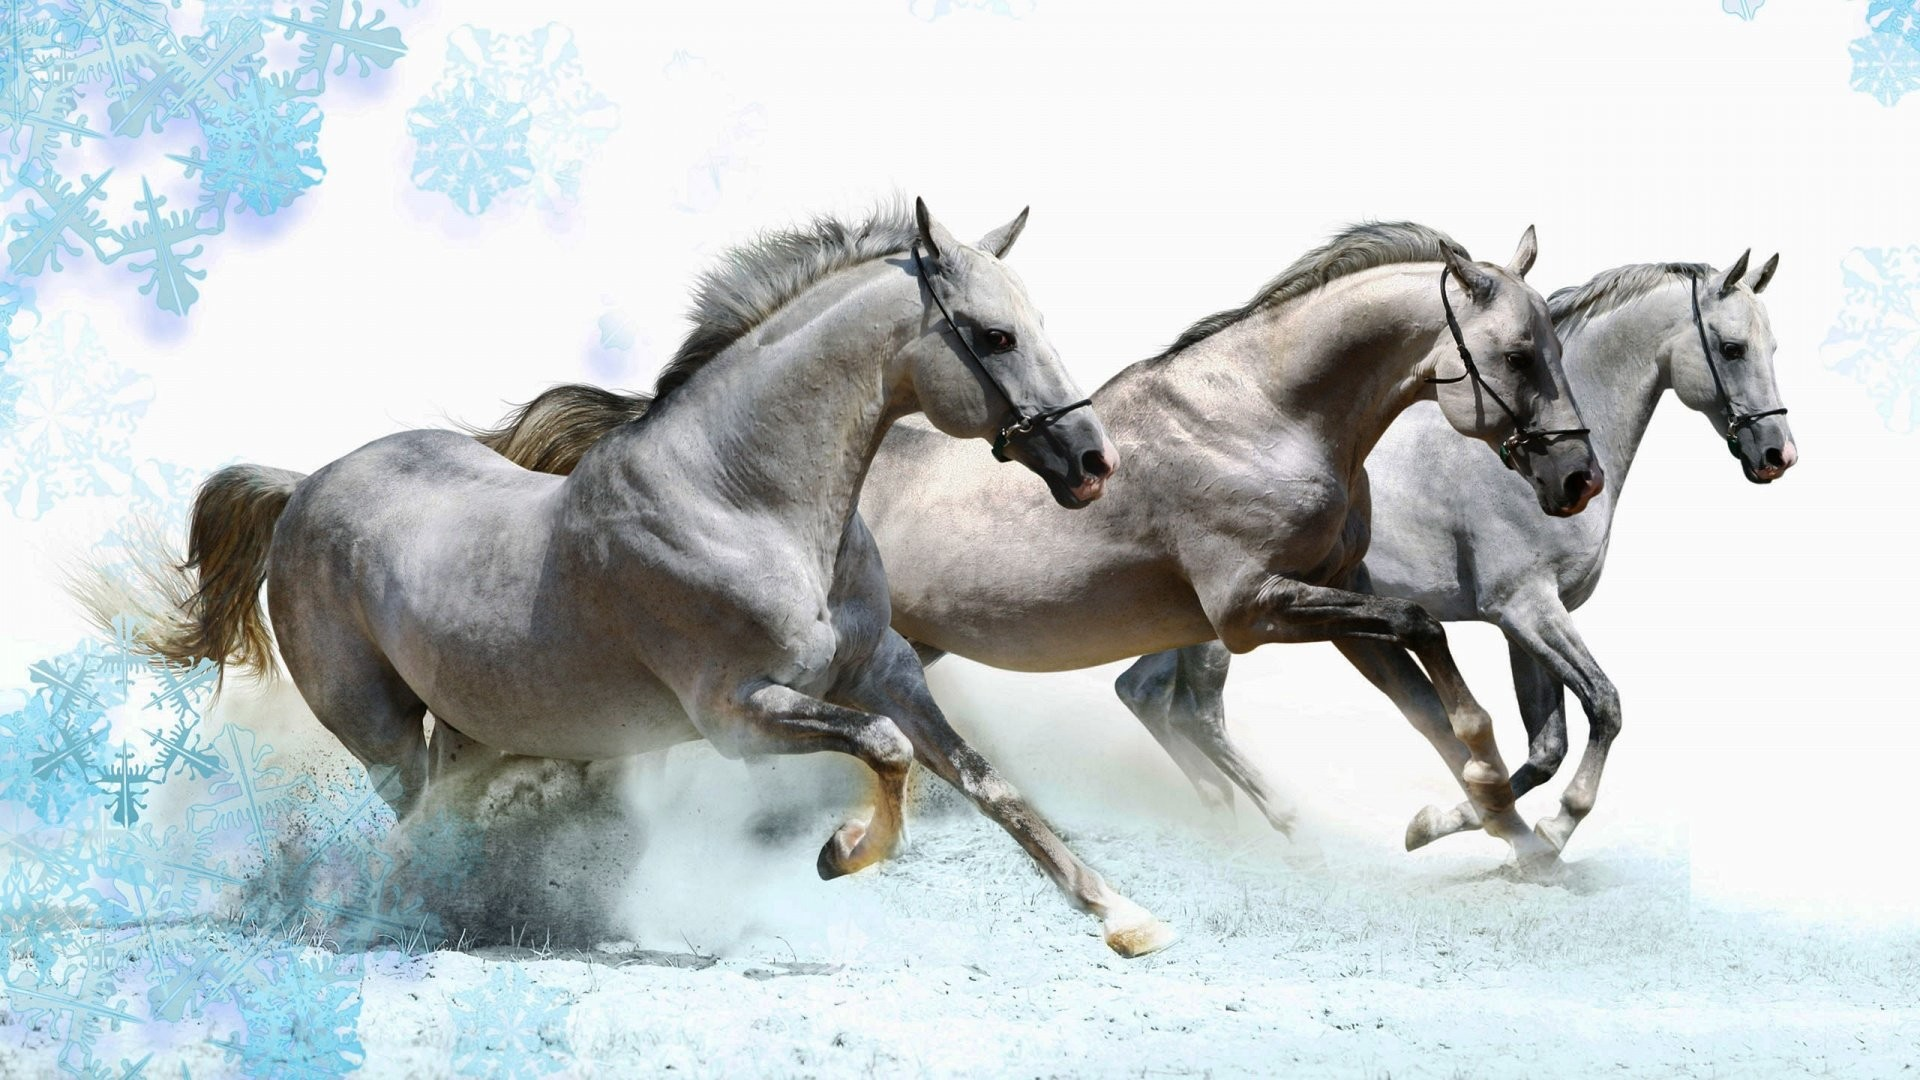 Running Horses Wallpaper (63+ images) - photo#20